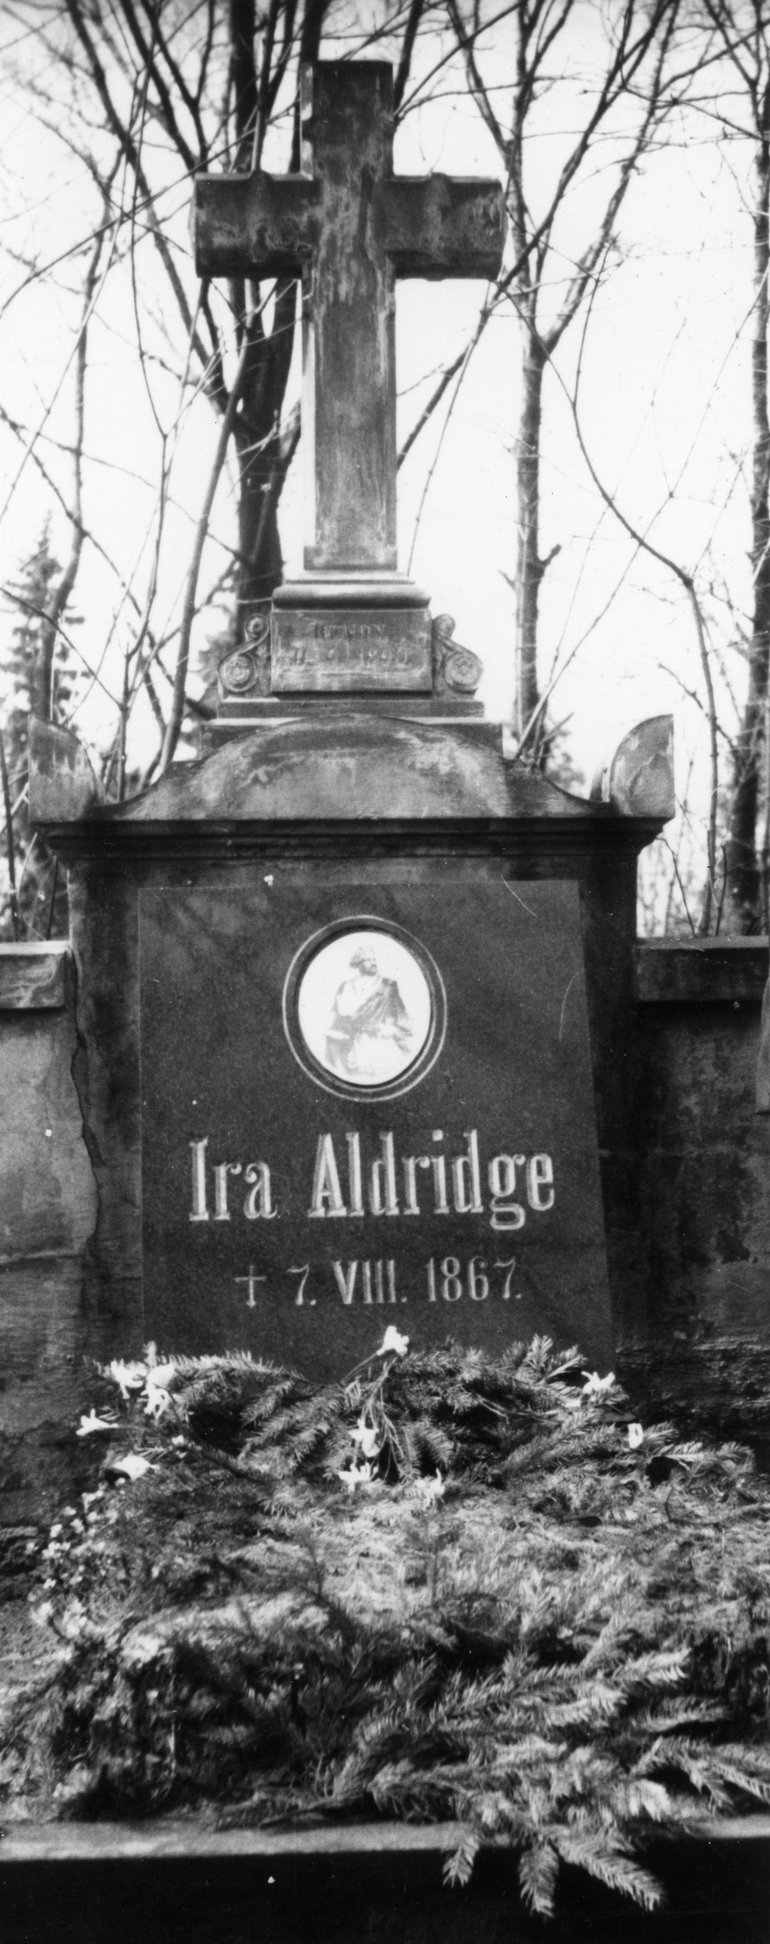 Ira Aldridge's grave in Lodz